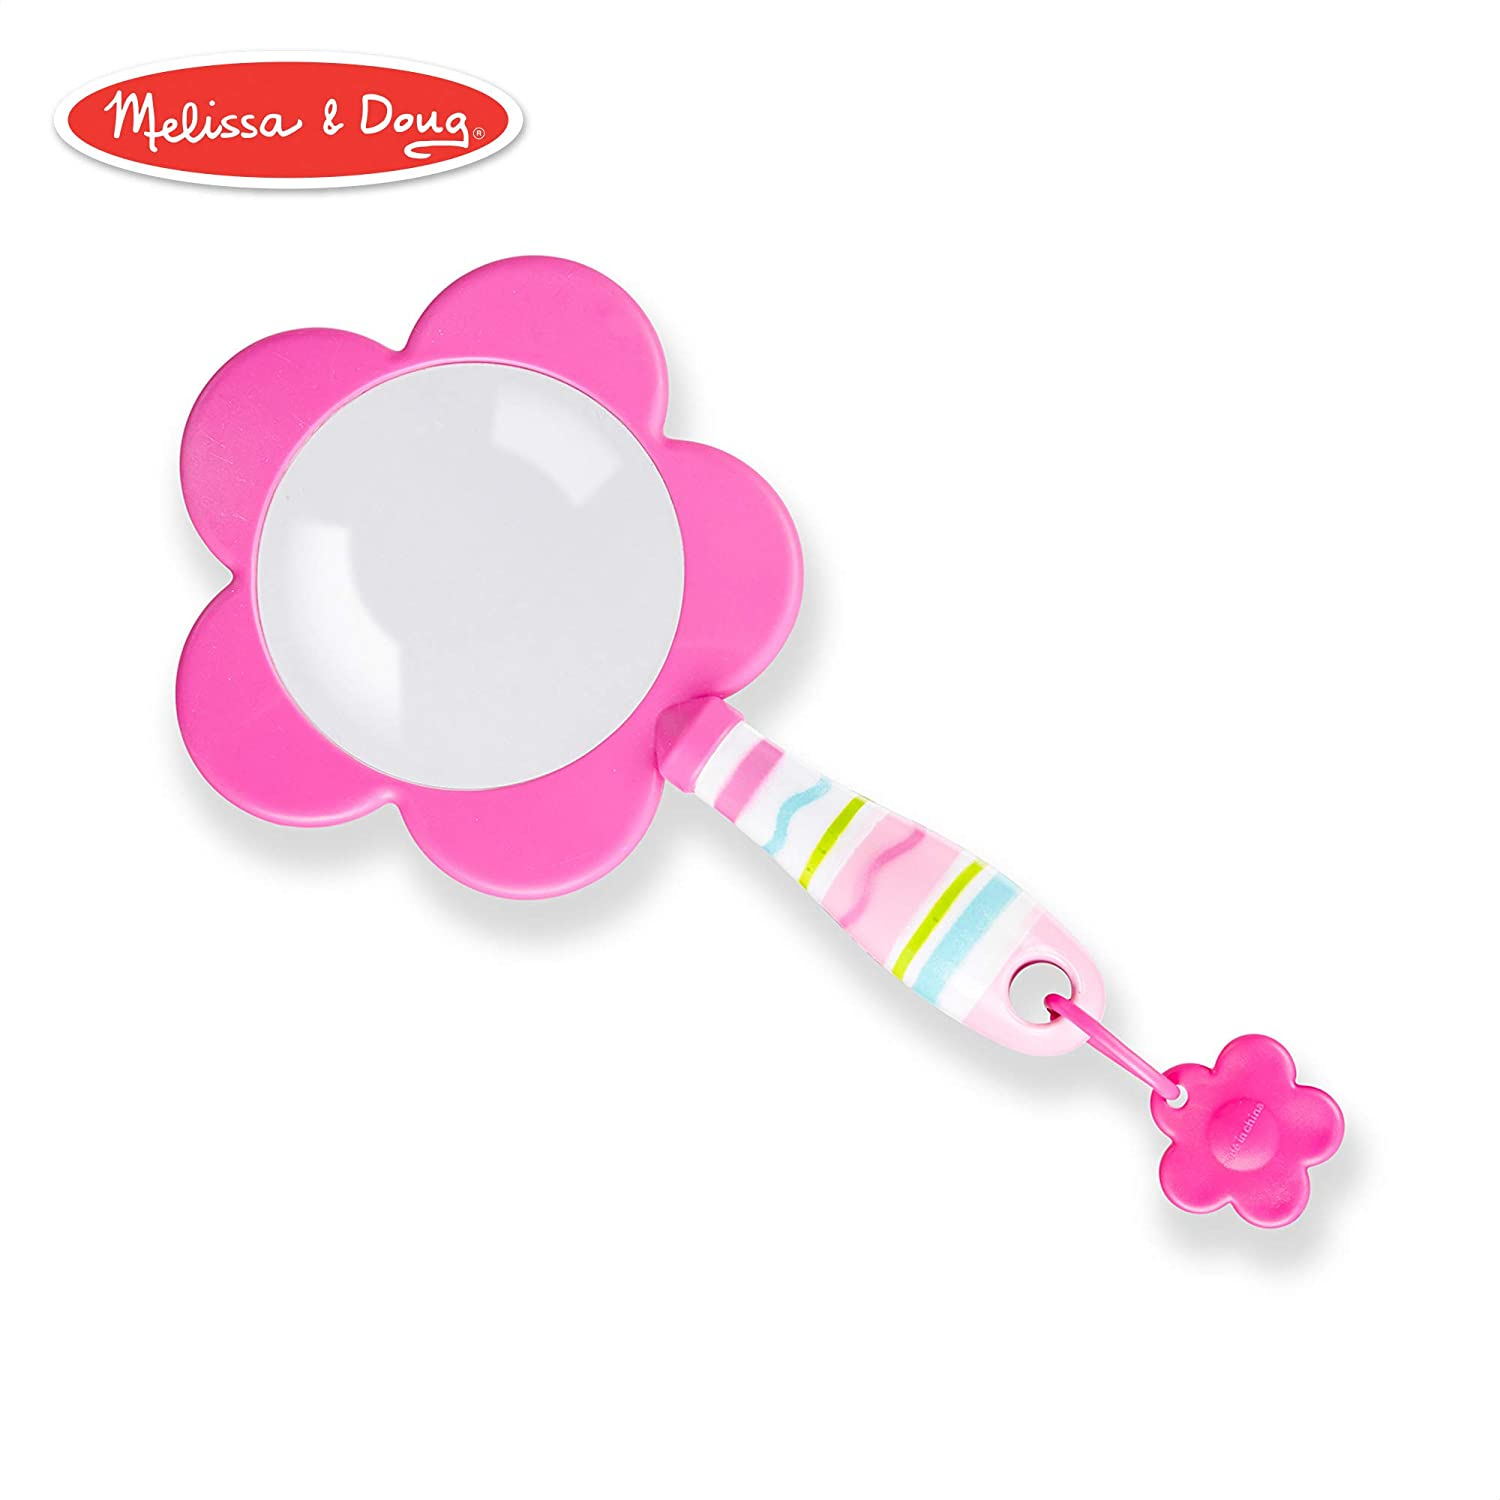 Top 9 Best Kids Magnifying Glass Reviews in 2019 5